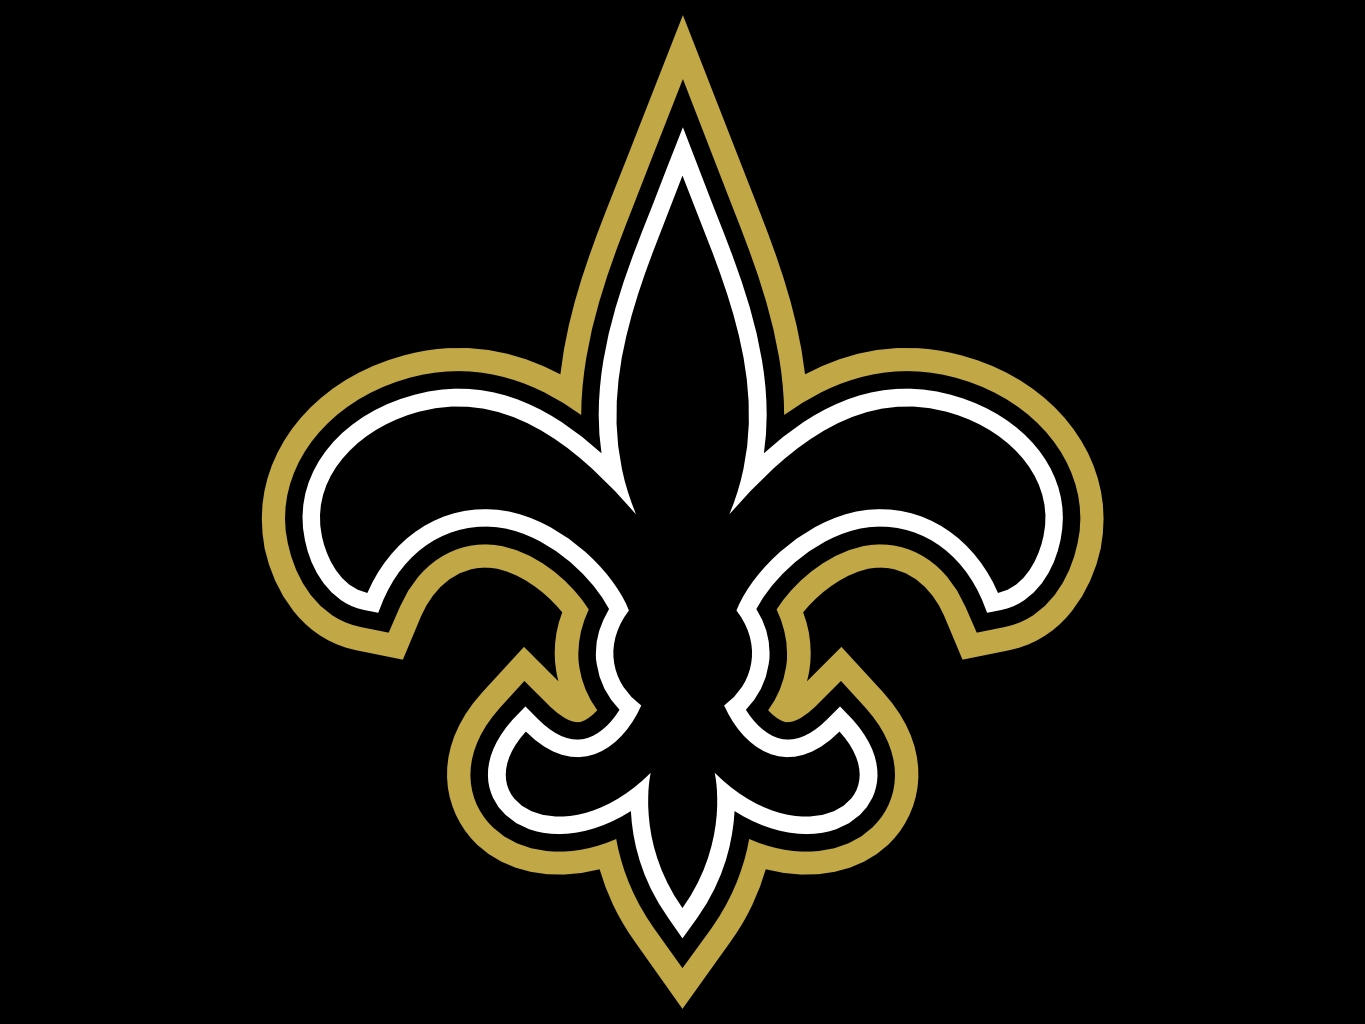 New Orleans Saints - Wikipedia